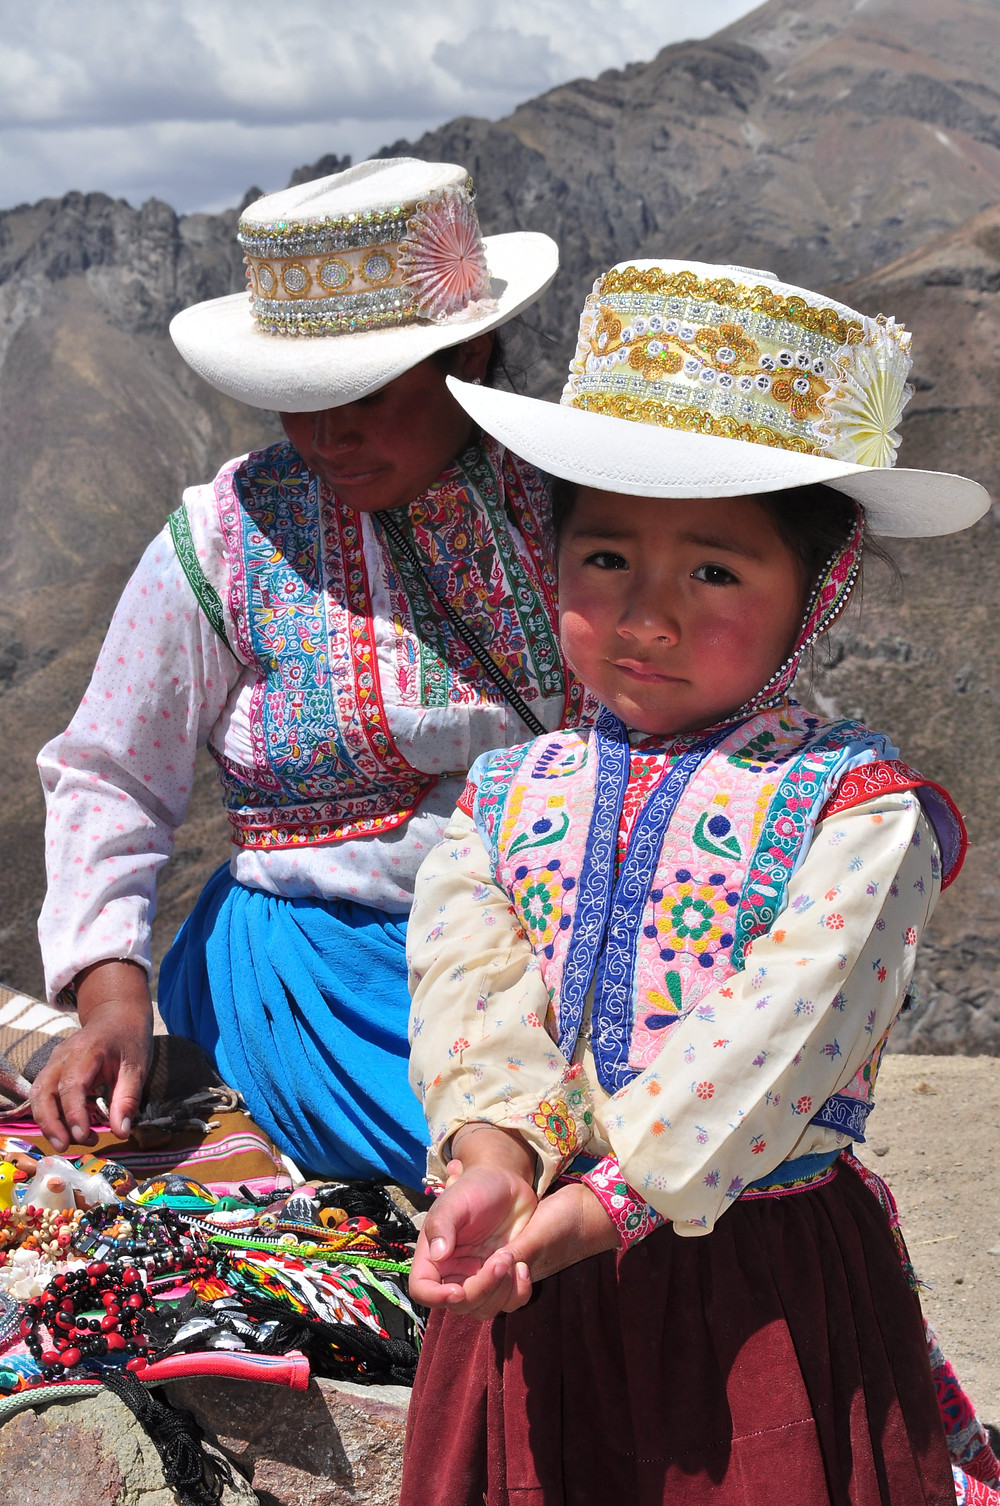 Tenues traditionnelles d'Arequipa